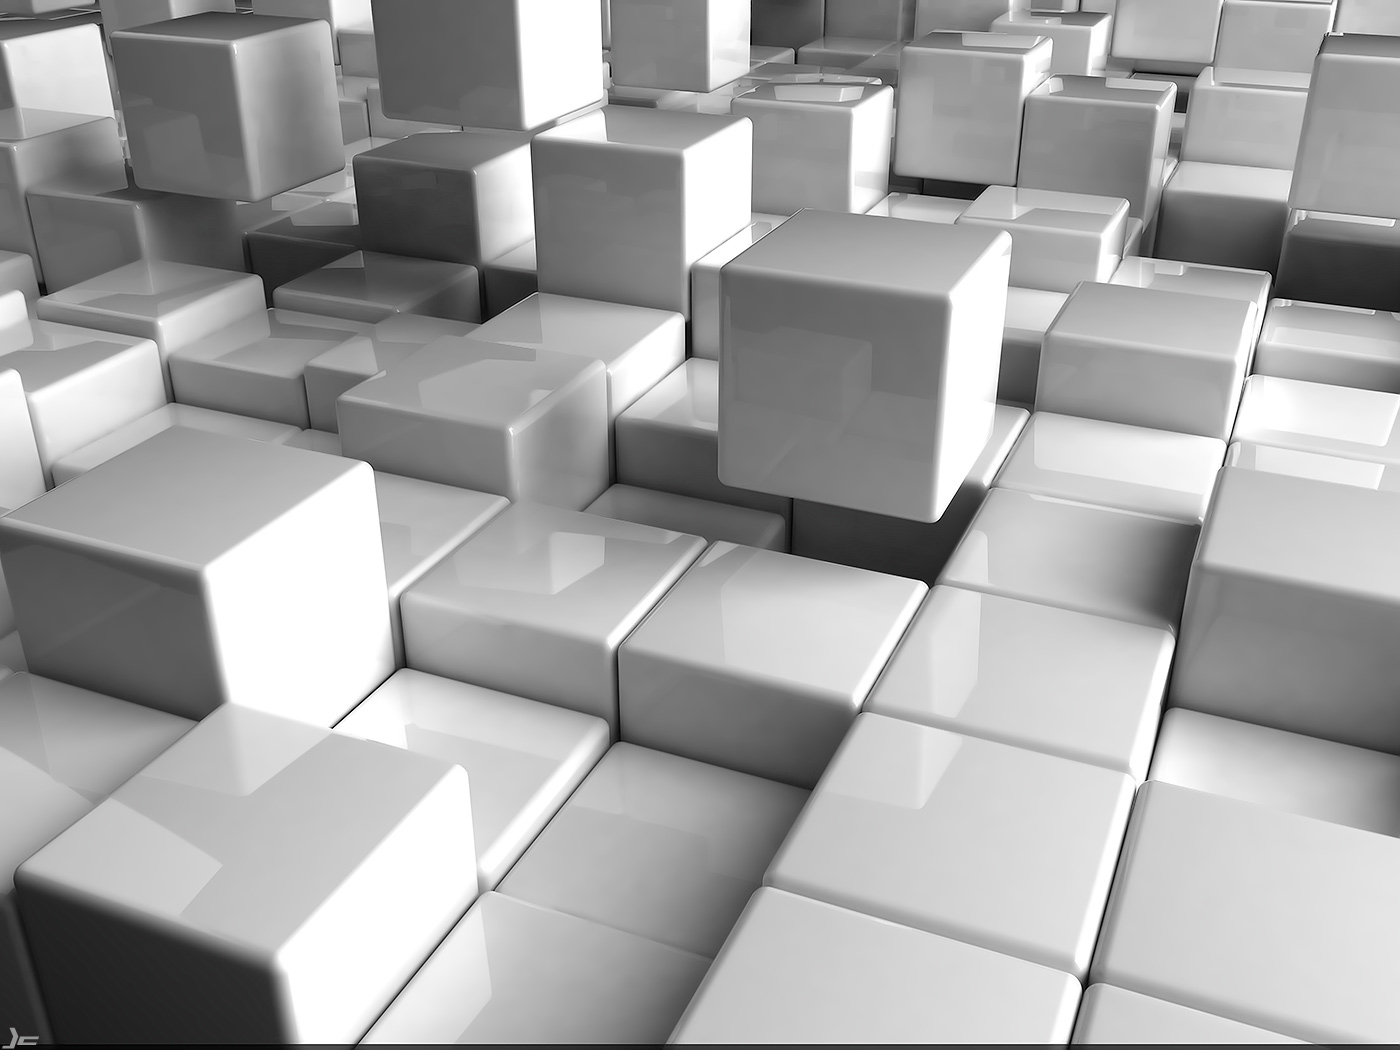 wallpaper daily cubes wallpapers